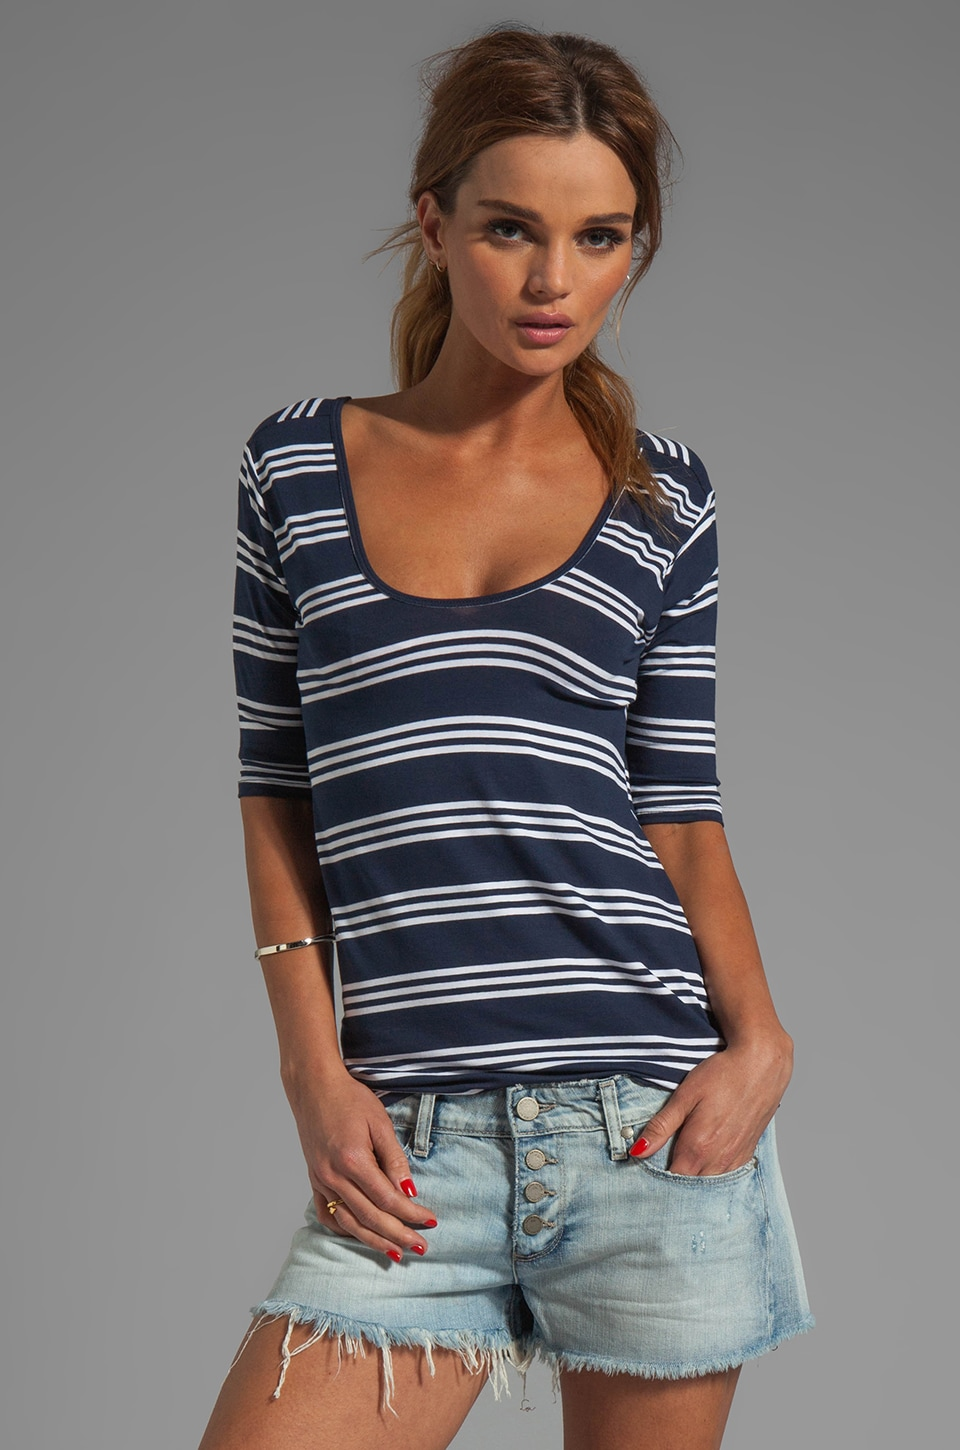 Feel the Piece St. Tropez Open Back Top in Navy Triple Stripe